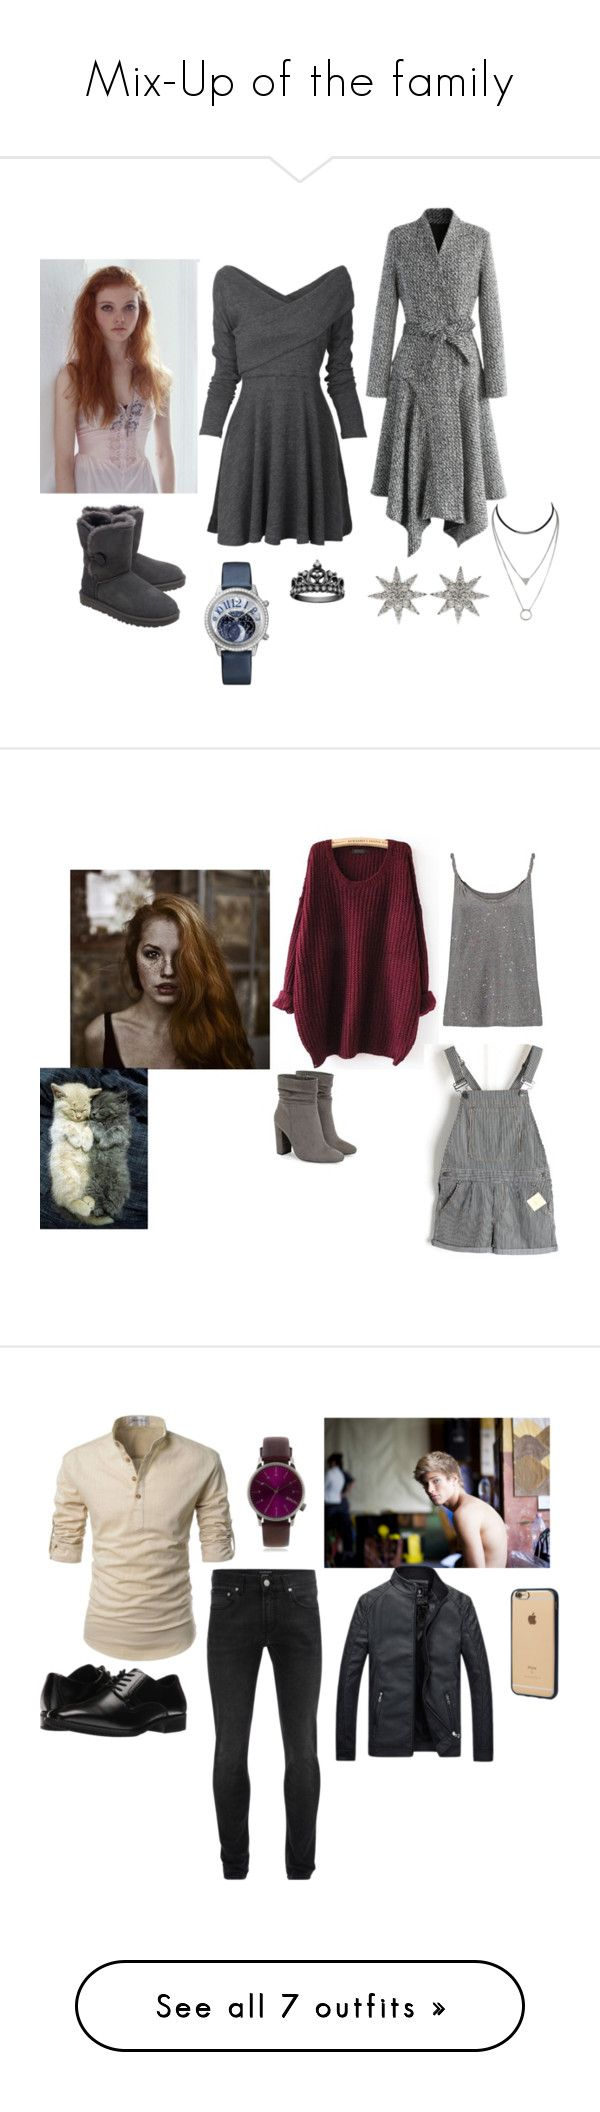 """""""Mix-Up of the family"""" by sungazing ❤ liked on Polyvore featuring Chicwish, UGG, Bee Goddess, Current/Elliott, JustFab, Alexander McQueen, Stacy Adams, Topman, Incase and men's fashion"""